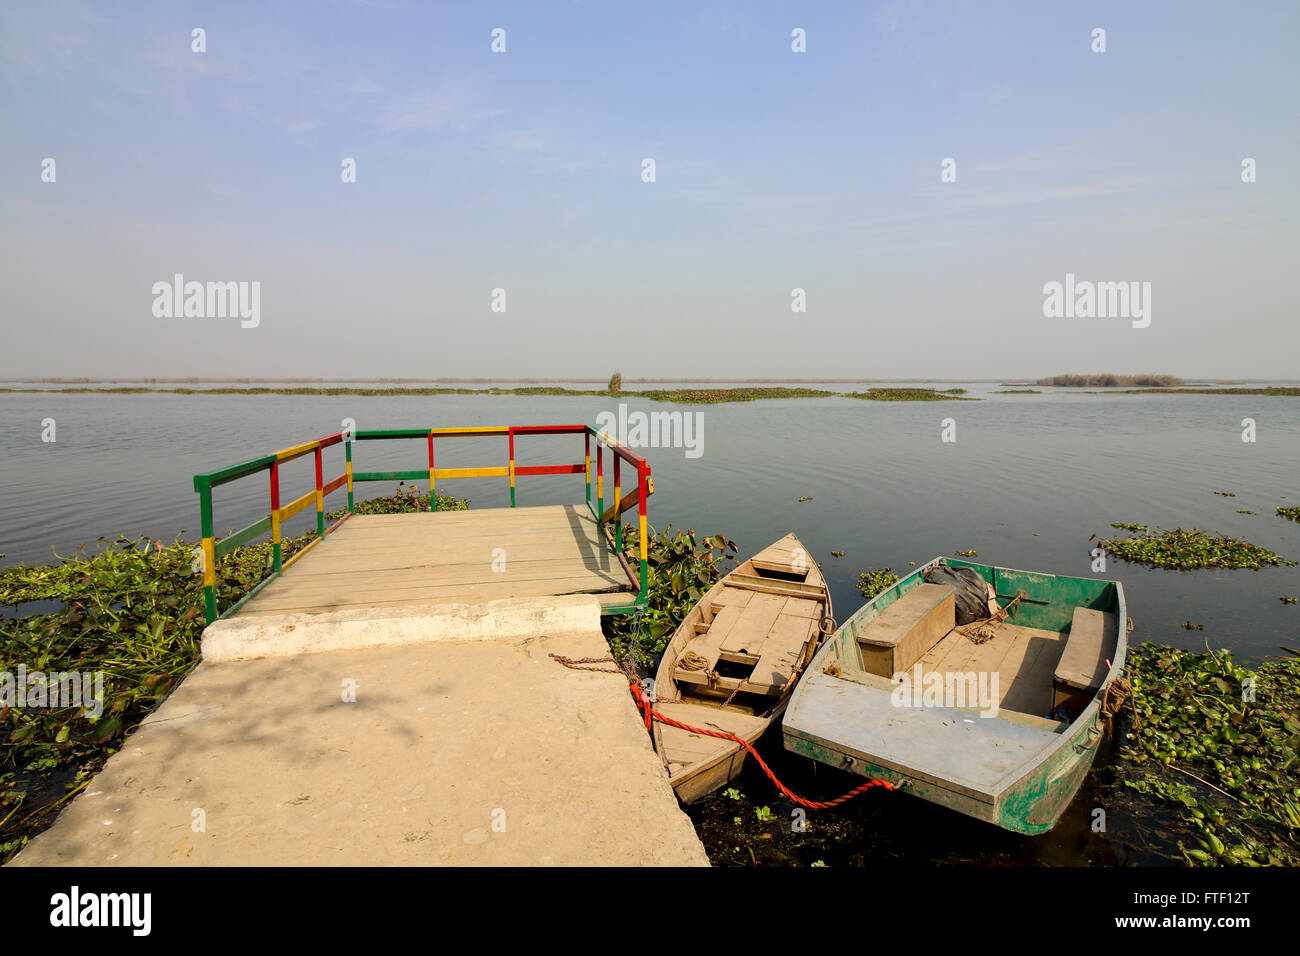 Small boats moored at the colorful jetty at Harike wetlands wildlife reserve in Punjab, India. - Stock Image